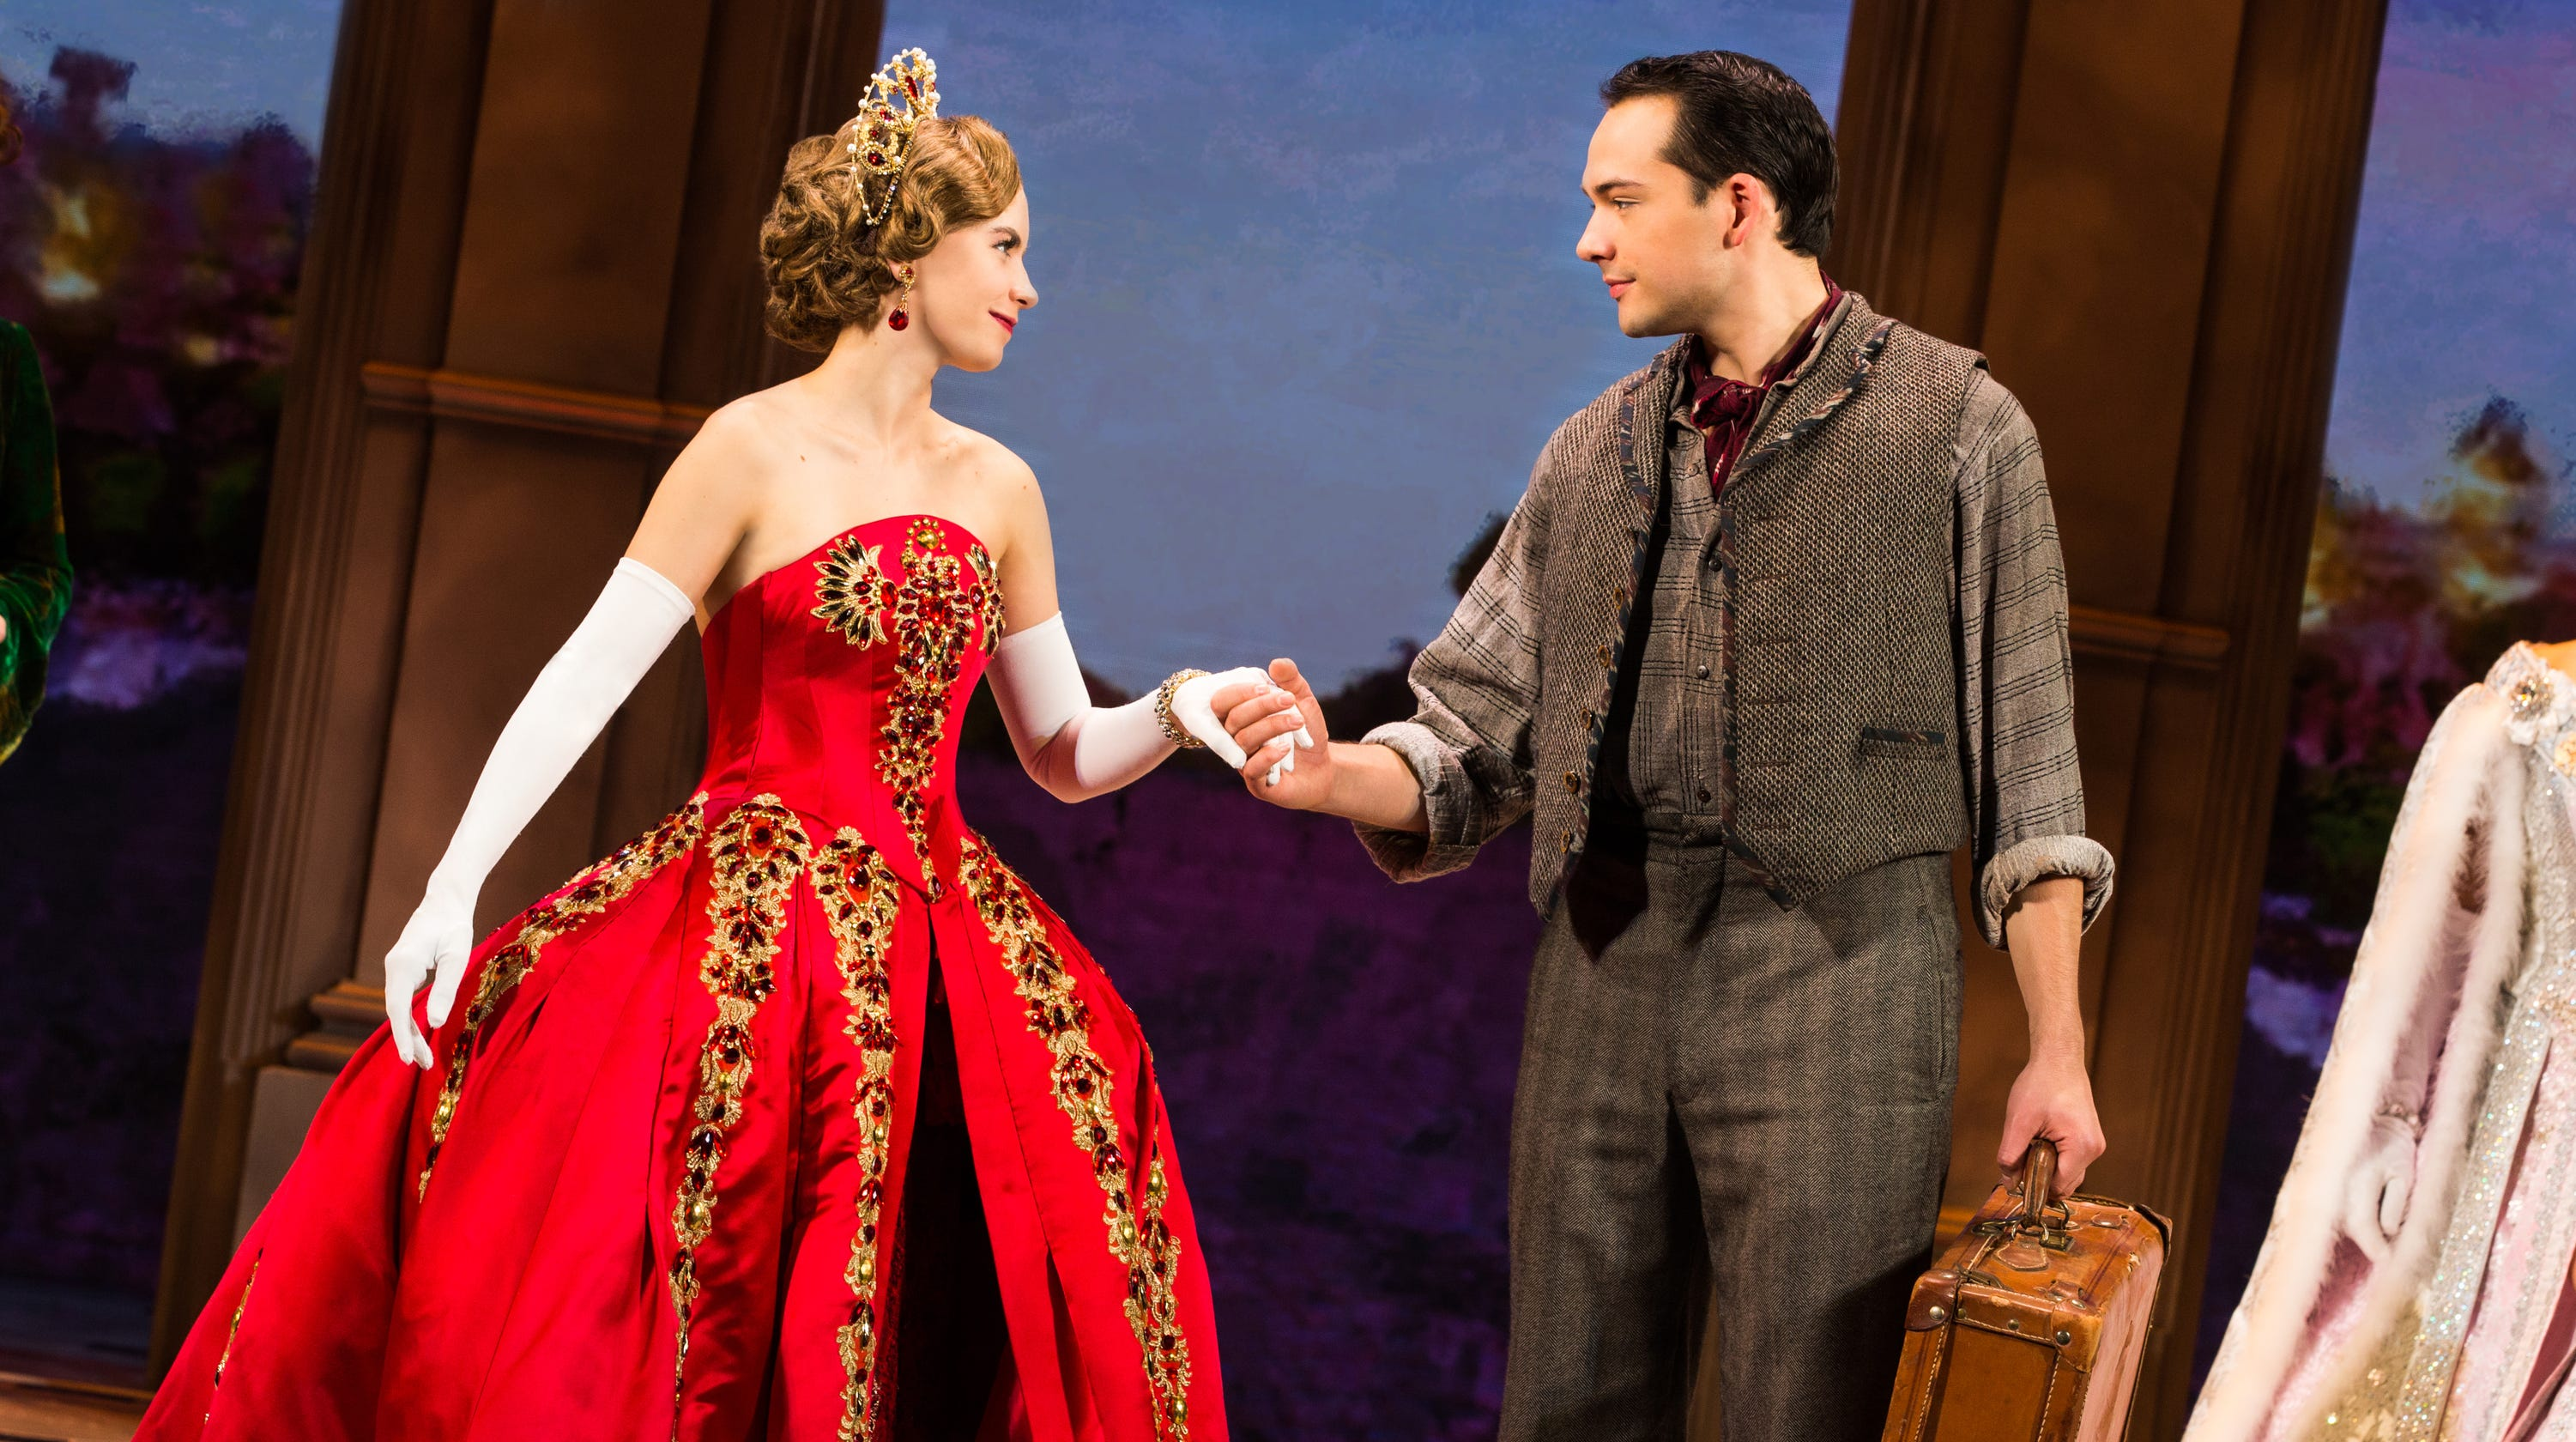 Des Moines Civic Center to present Broadway production of 'Anastasia,' featuring Mason City native